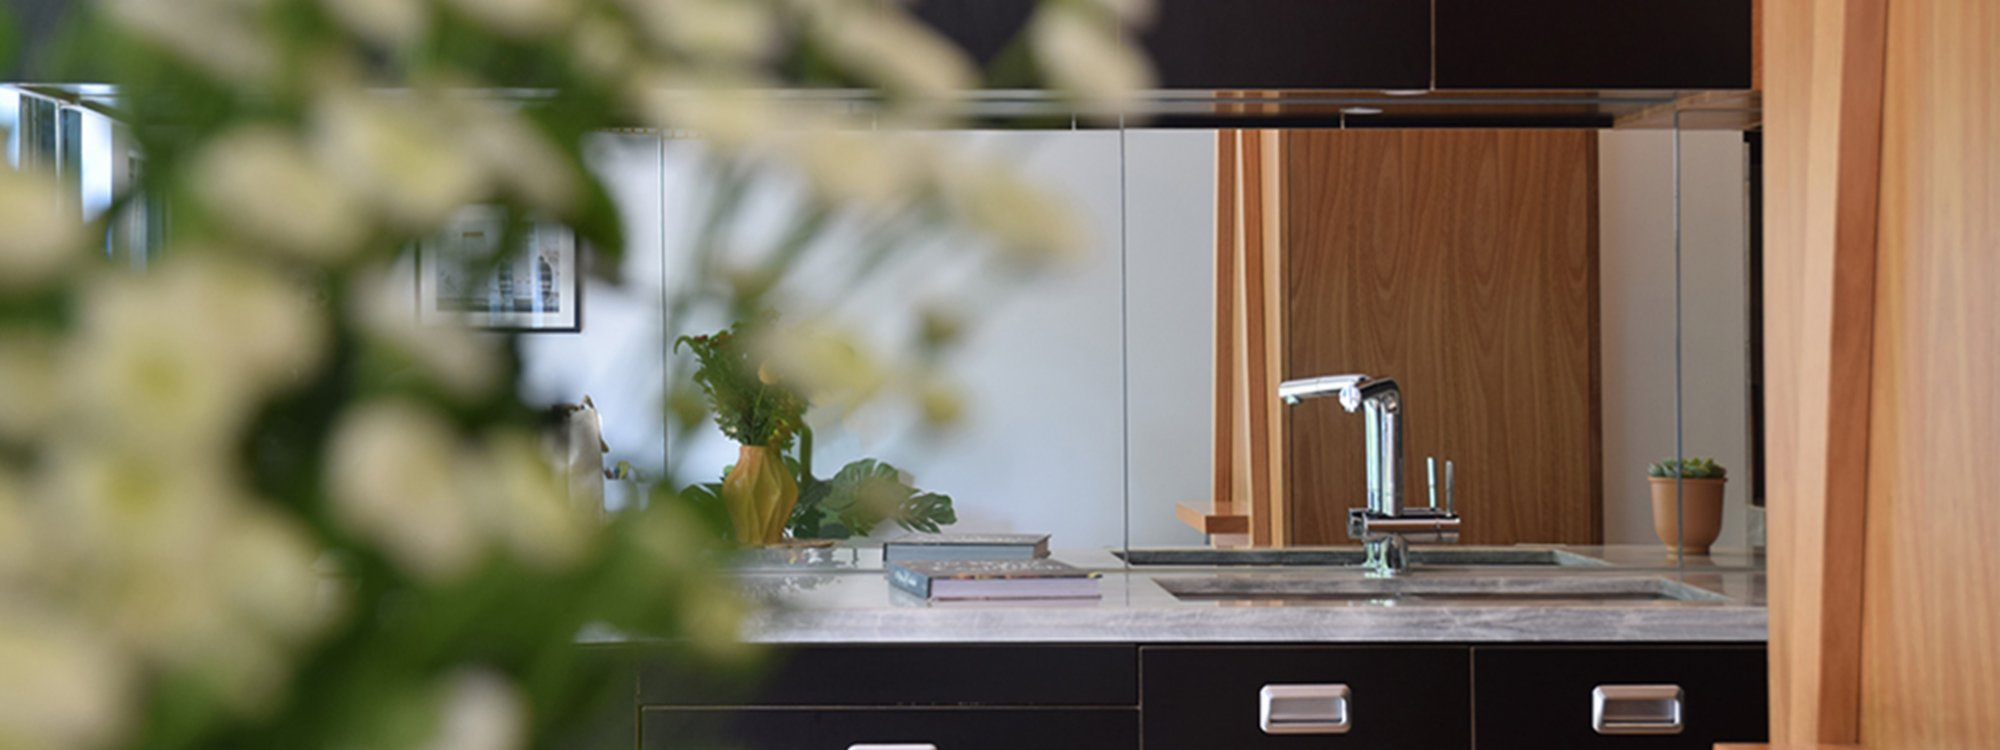 The Trenerry - Abbotsford - Kitchen Area Sink